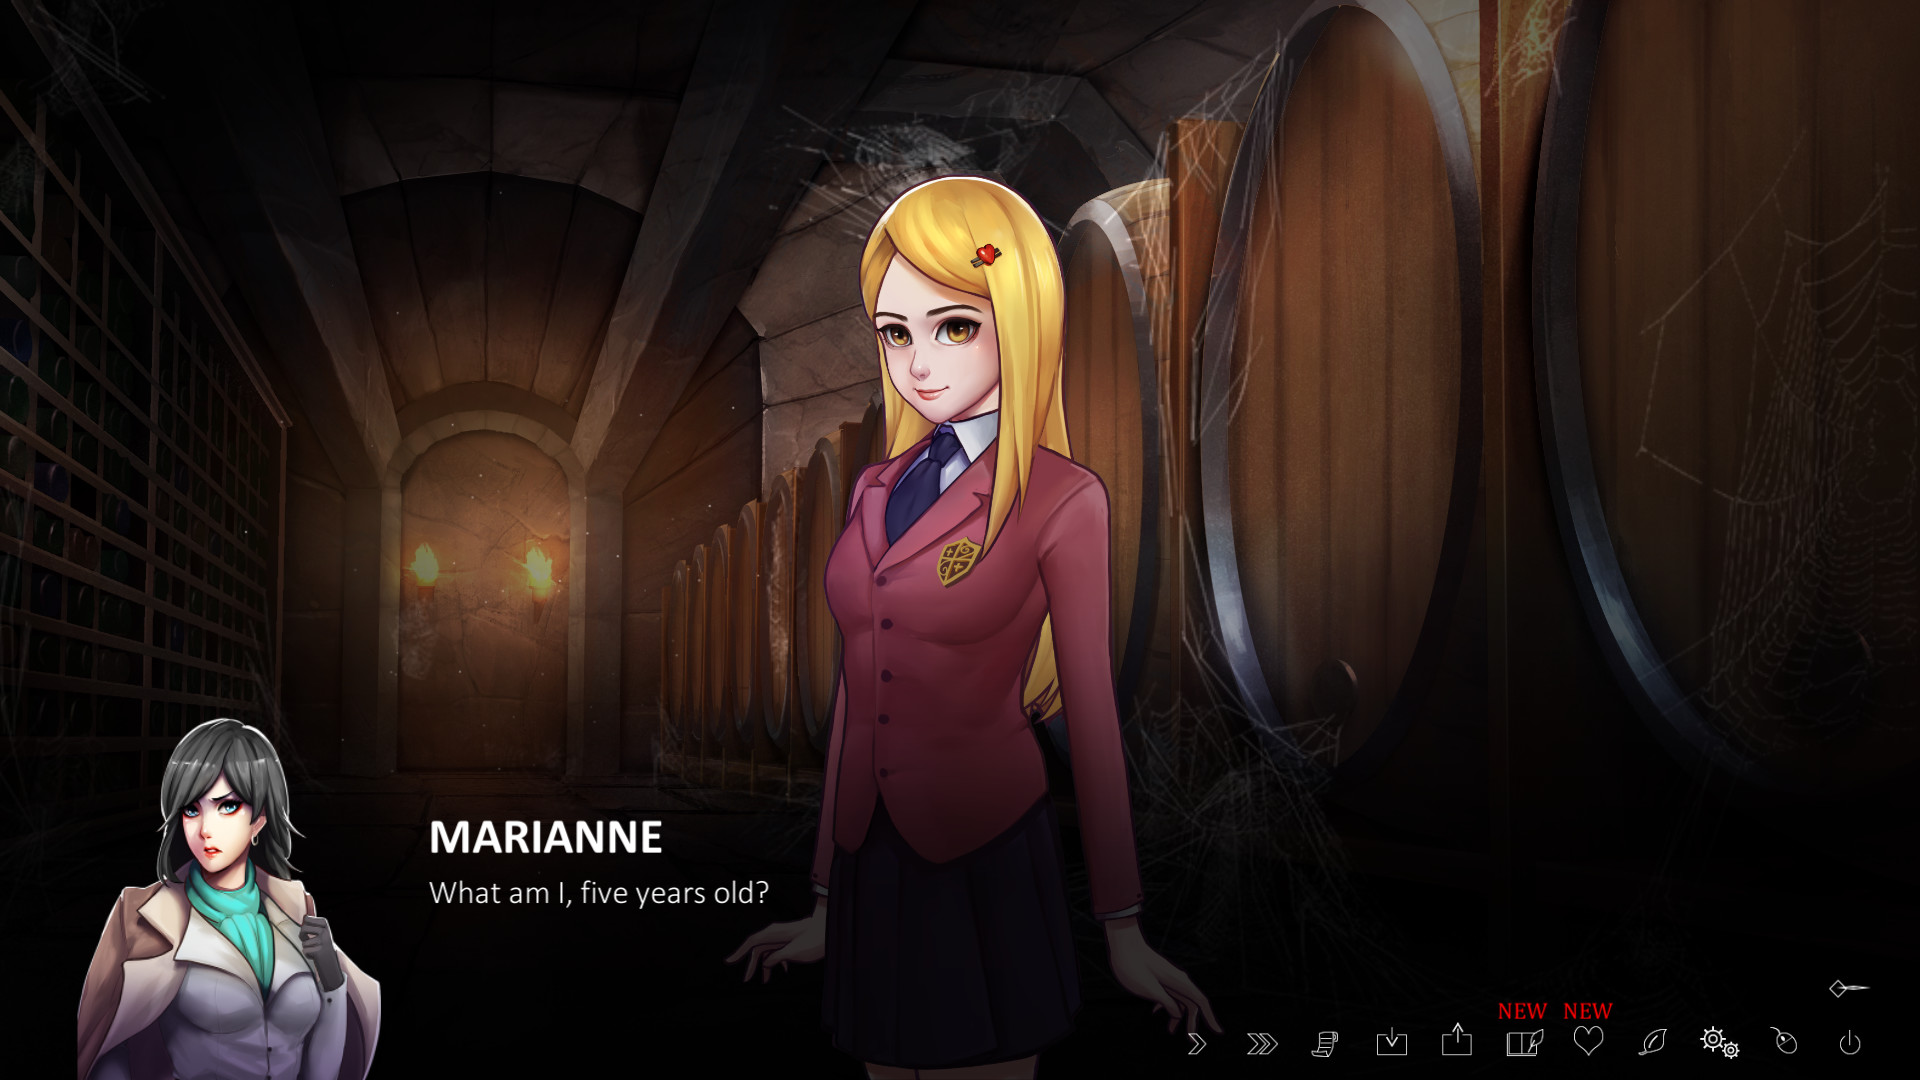 Katie From The Scullery Hookup Simulator Anime Game